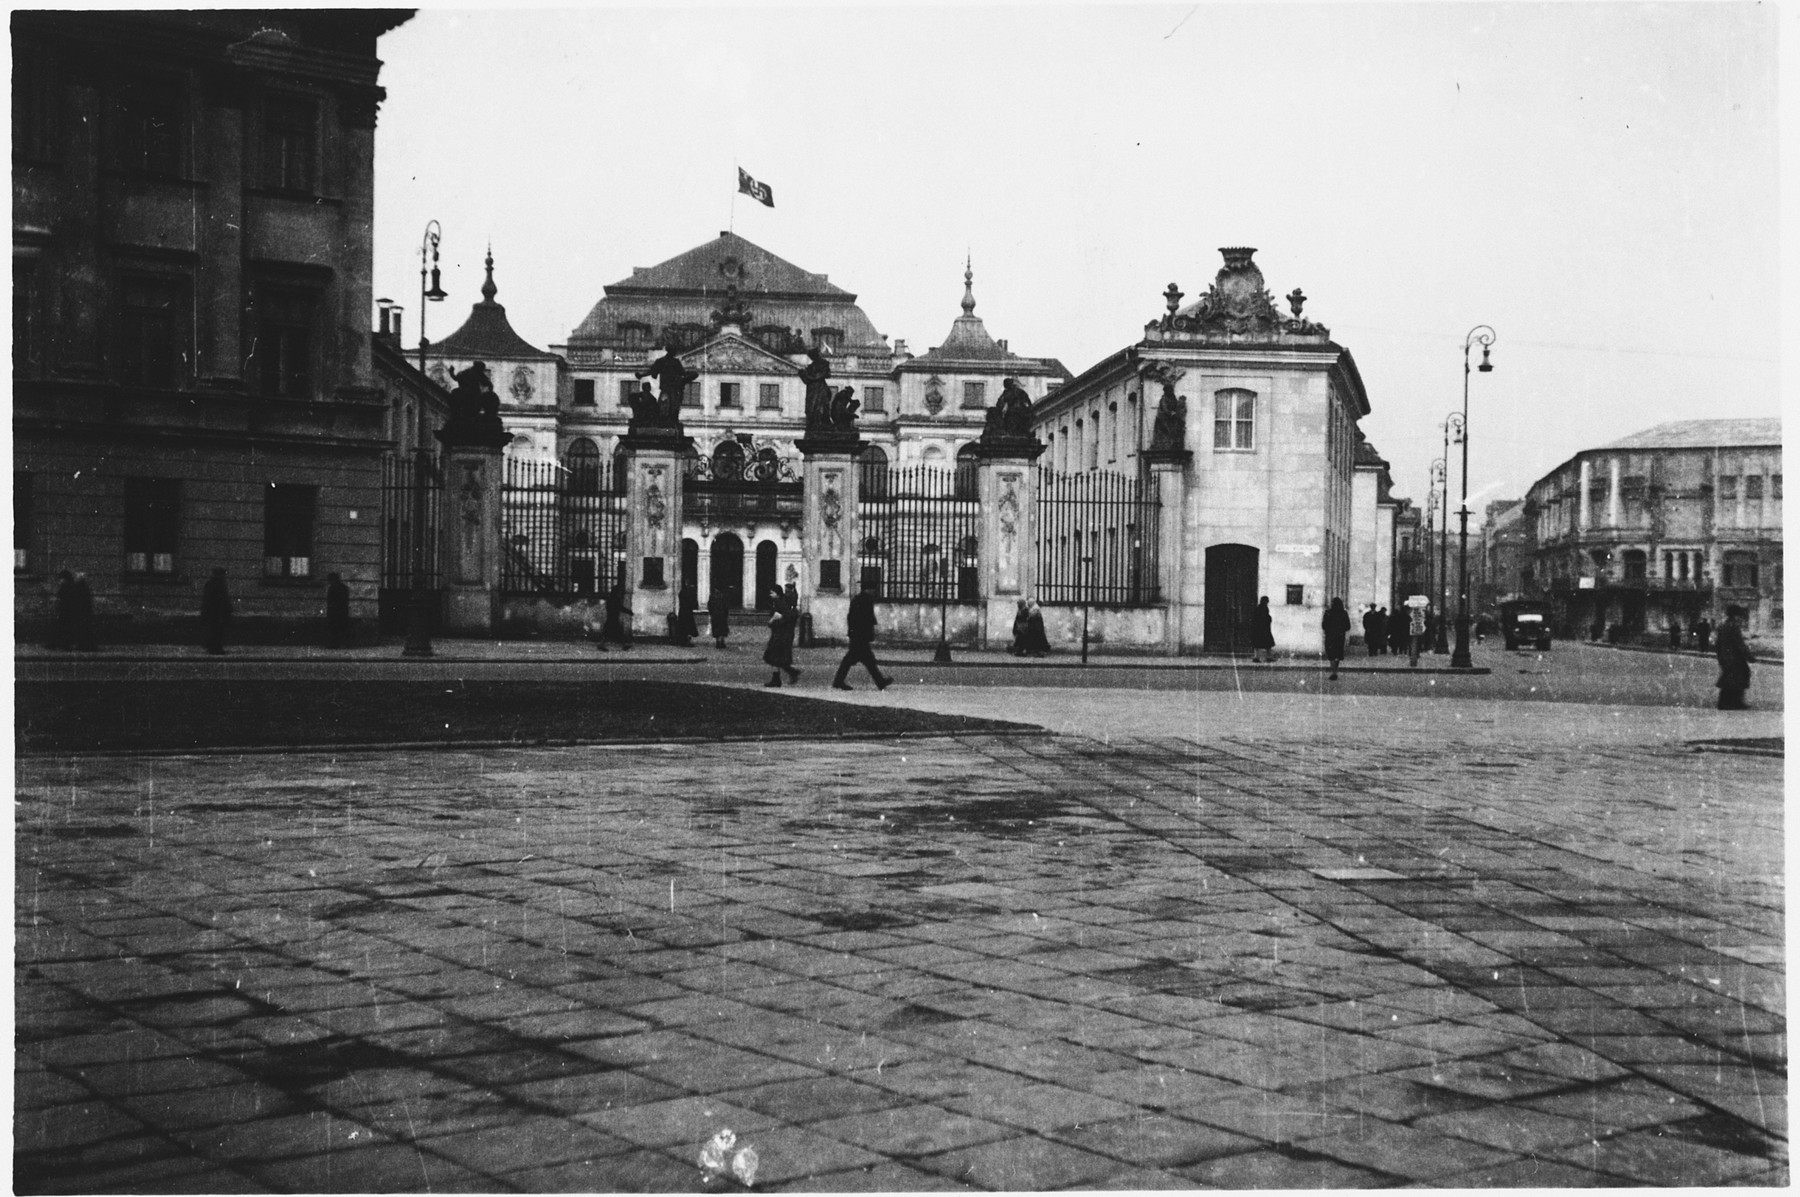 View of the former Polish Foreign Ministry building in Warsaw during the German occupation.